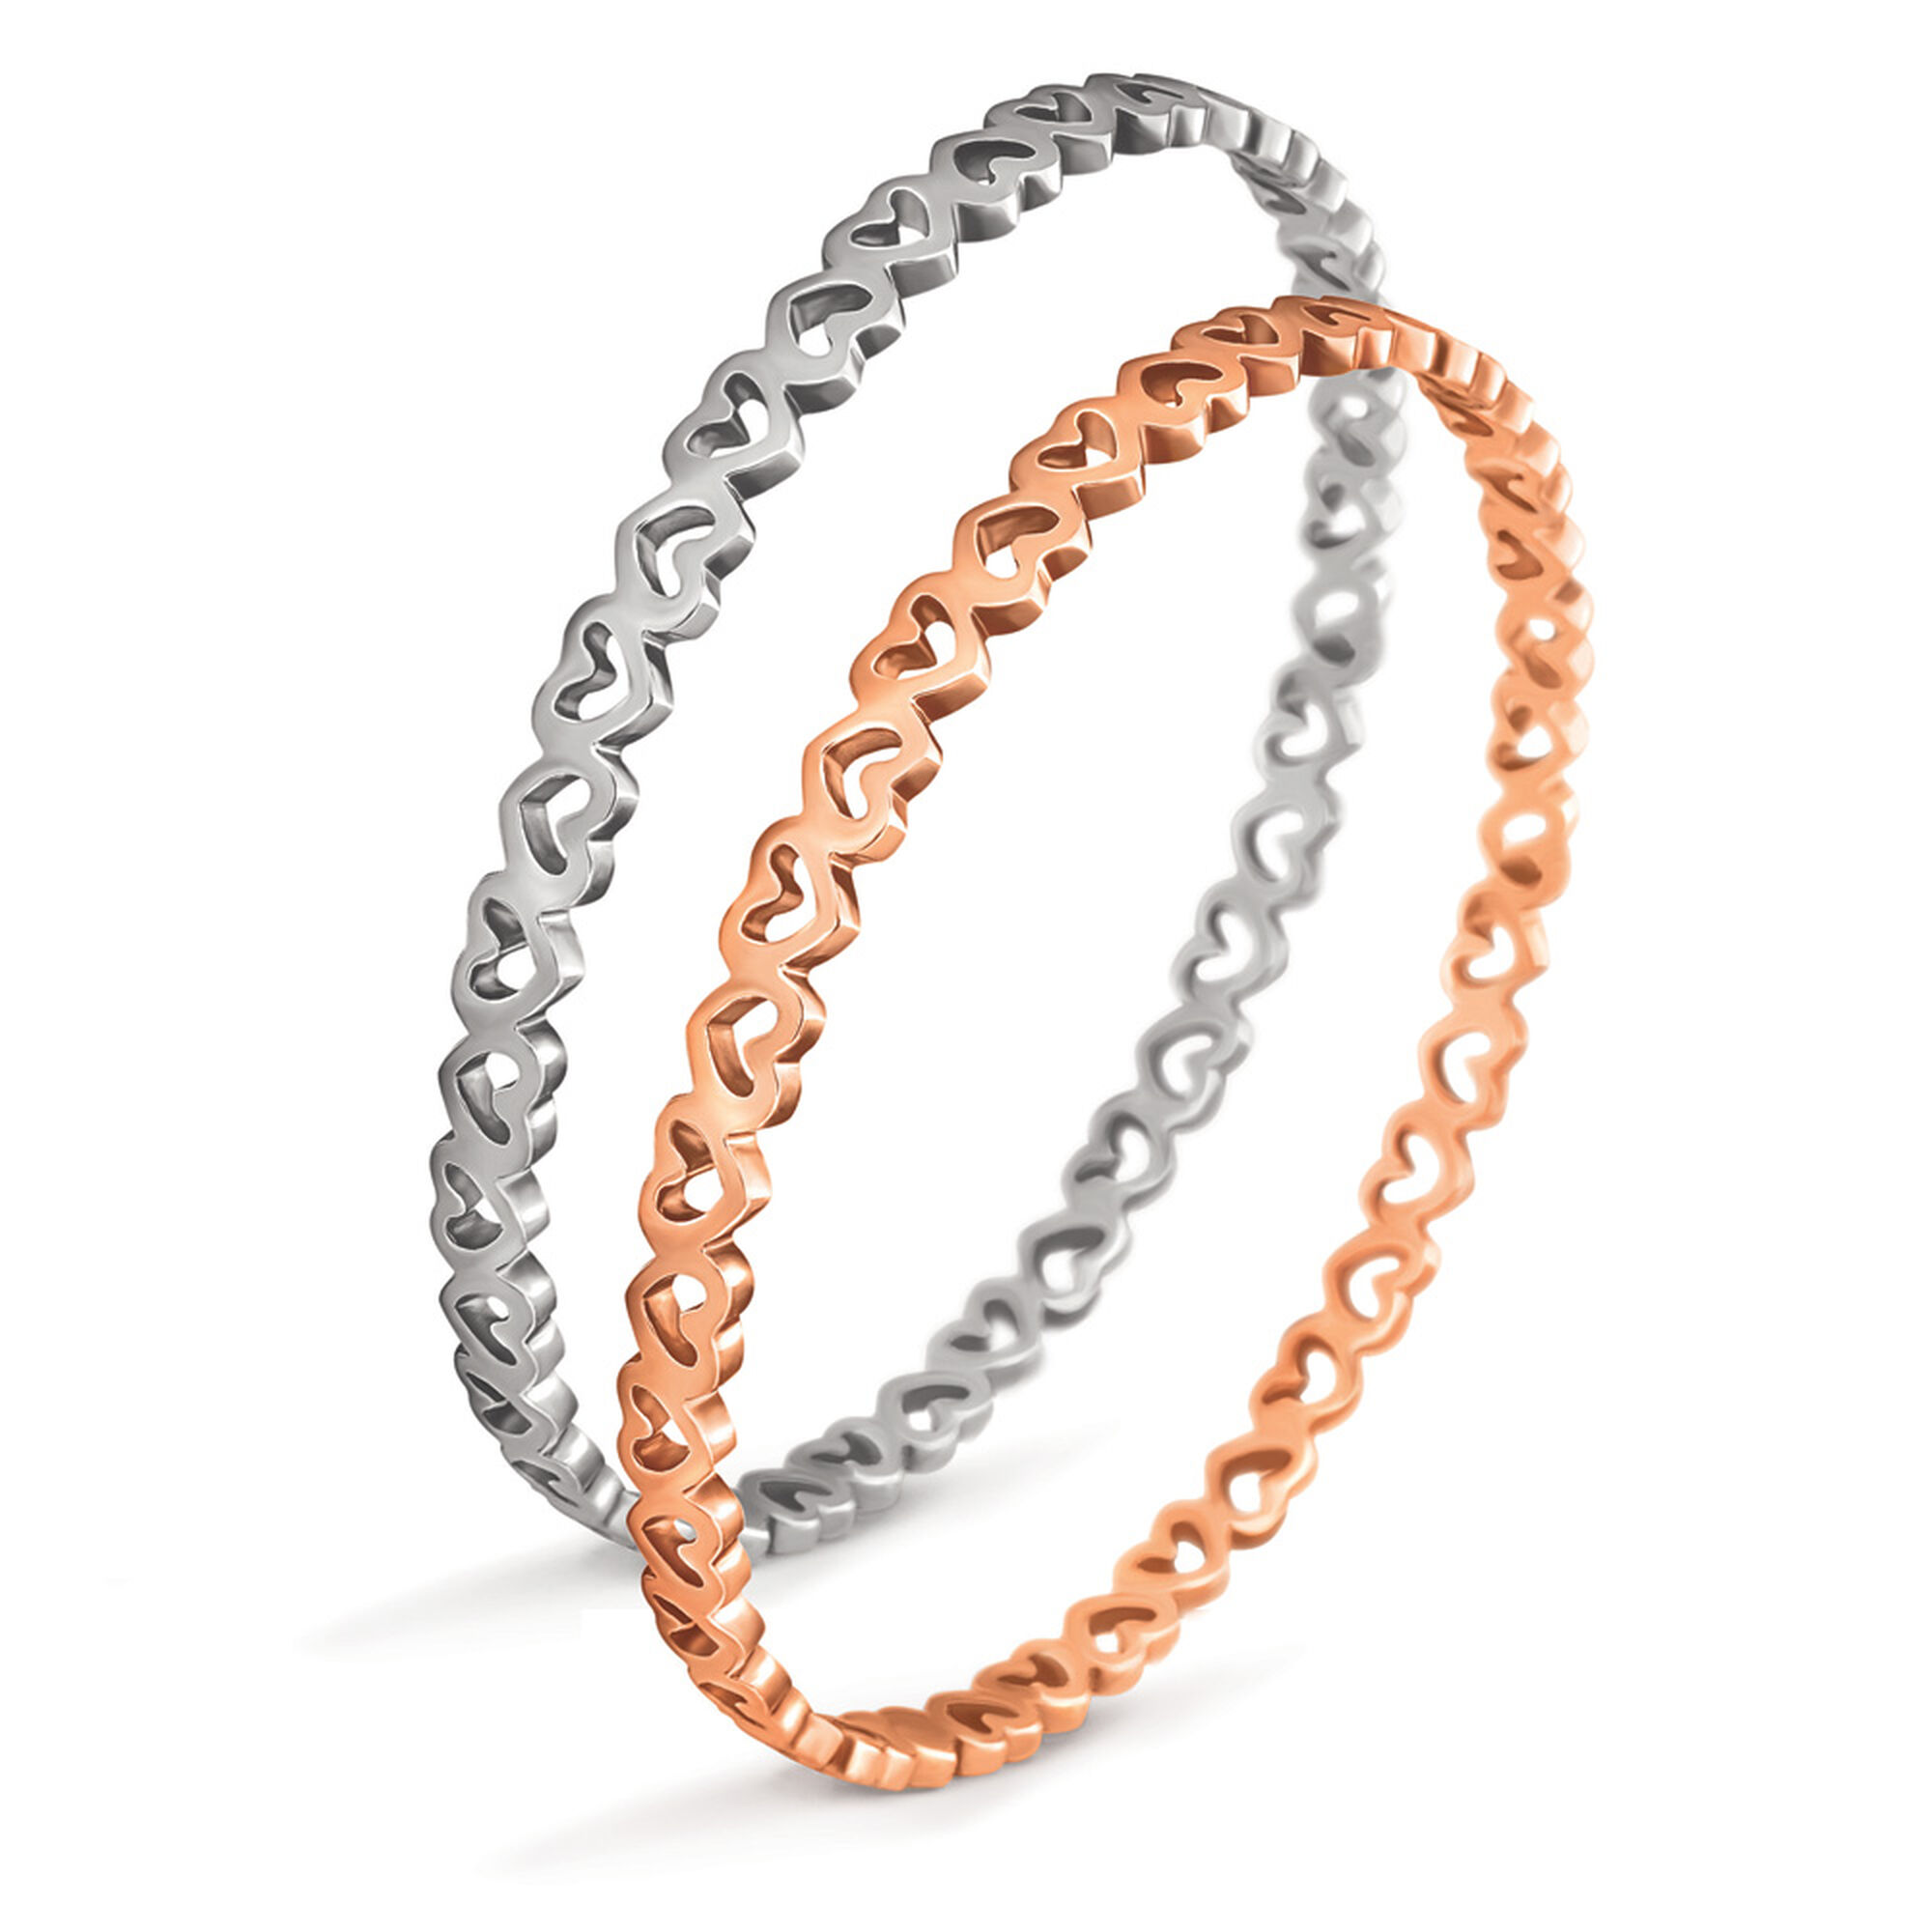 plated and small bangles love fortune bracelet cm silver amp rose gold clear en yellow bangle diameter bracelets stone crystal three set